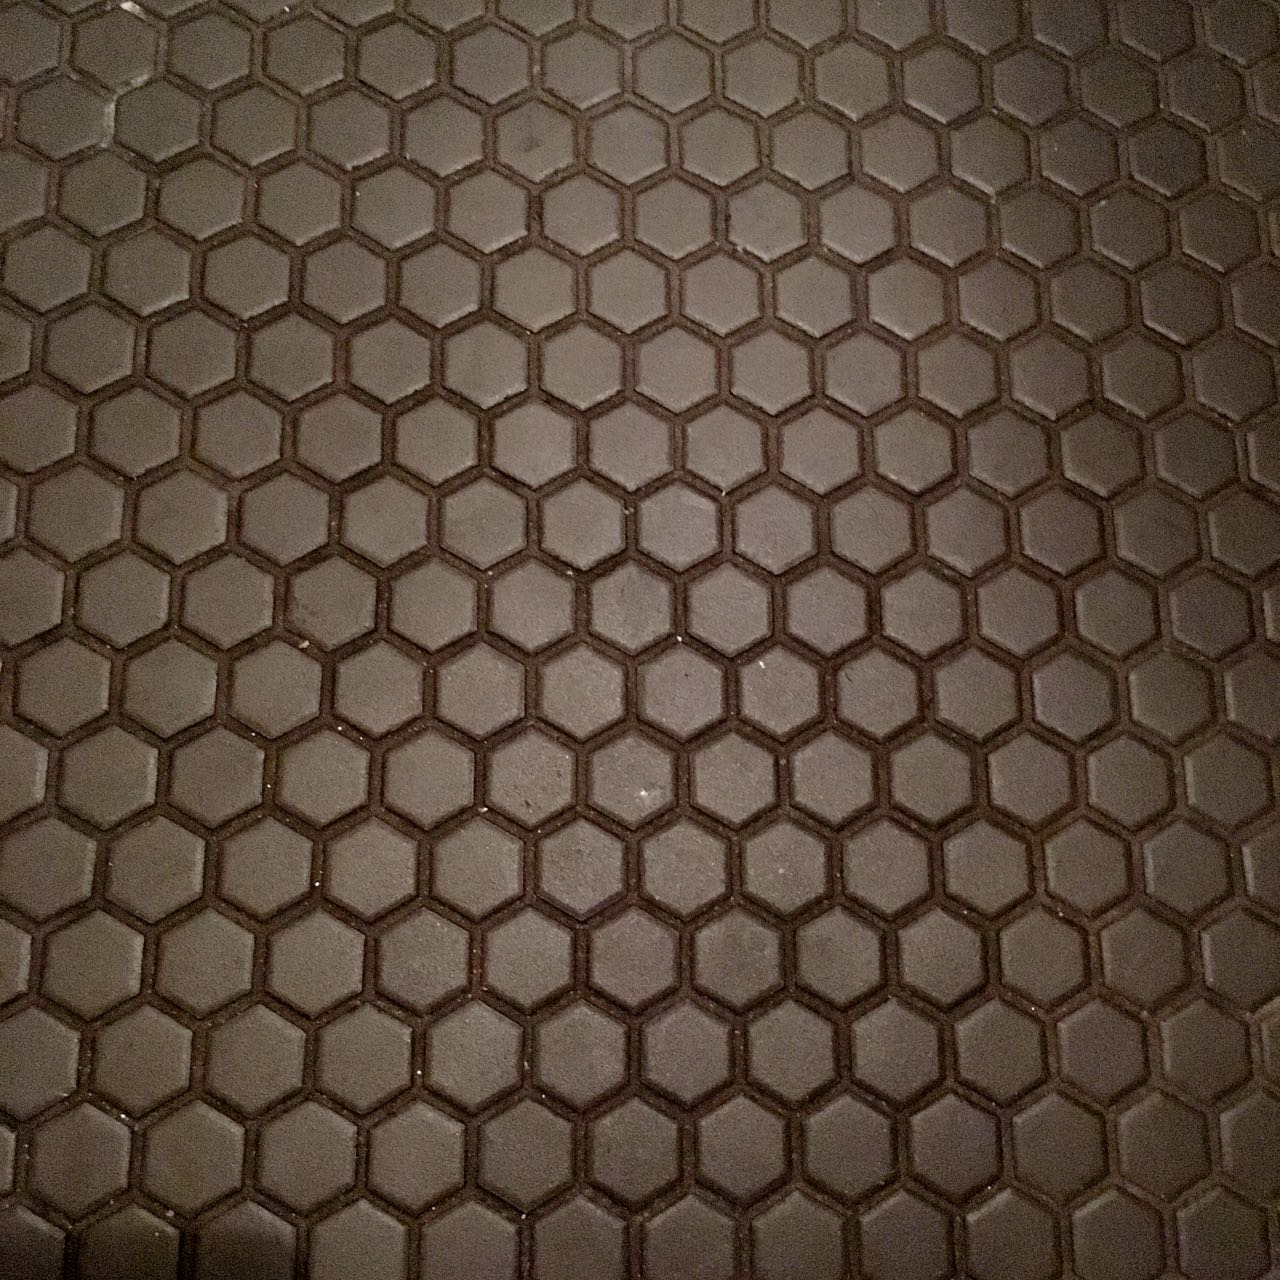 And a look at the floor in the loos at the Tandoor Chop House